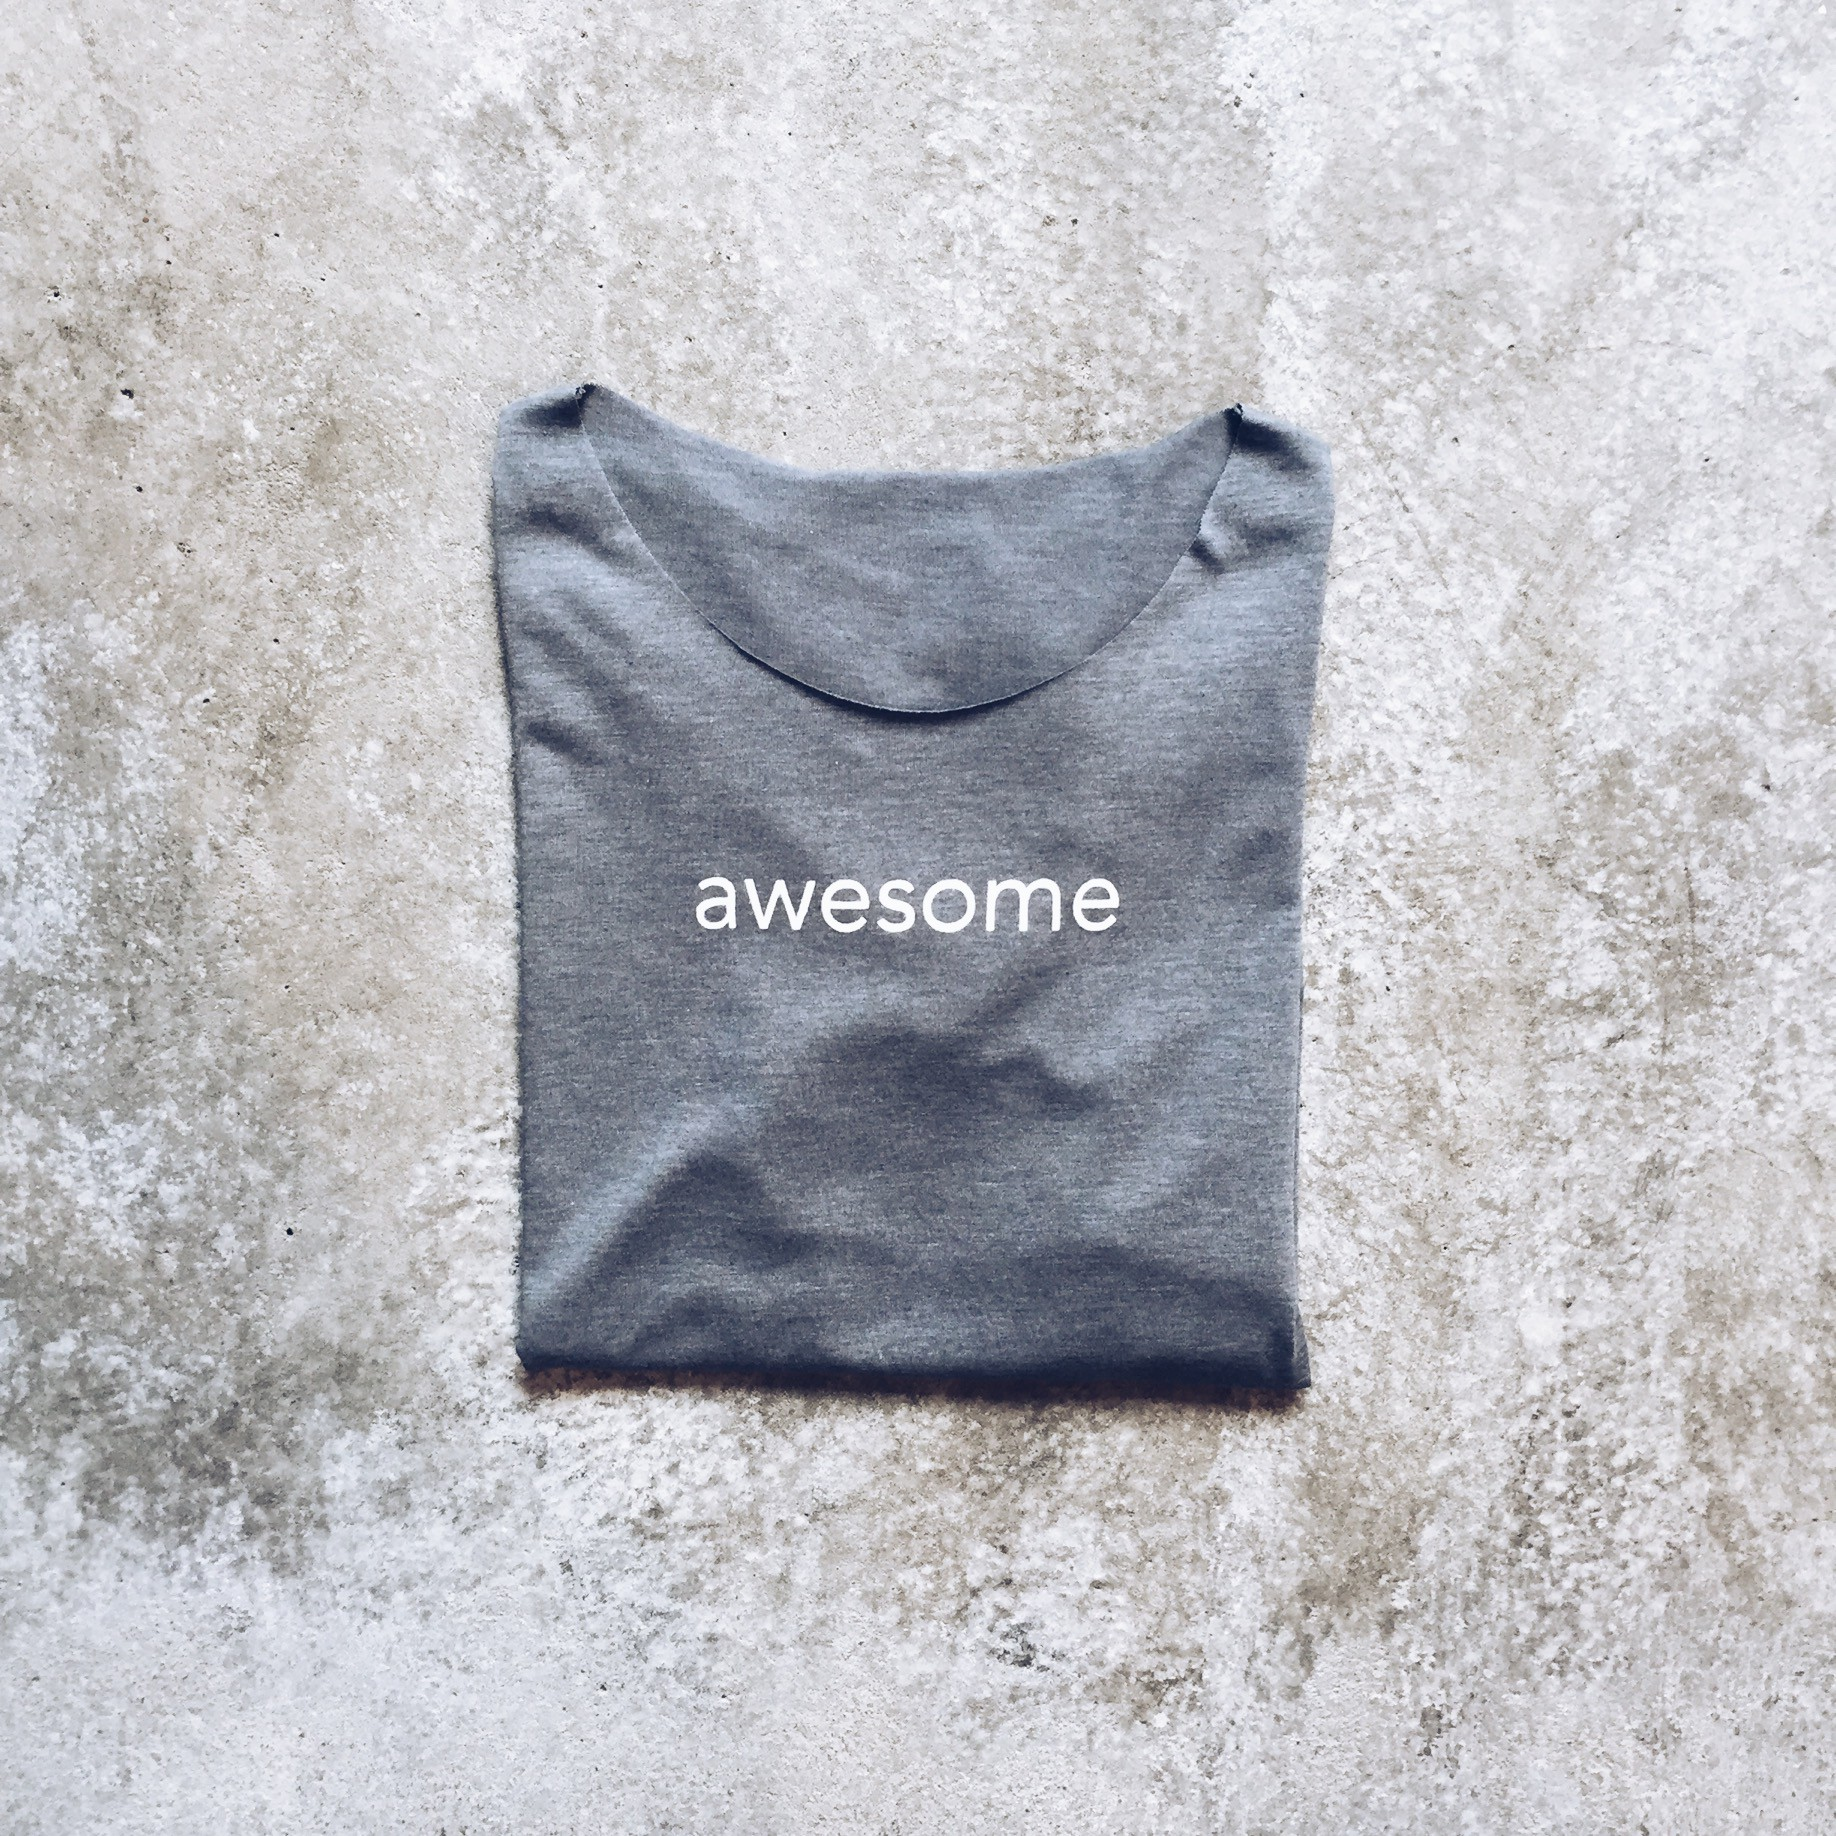 T-shirt Awesome - 36448